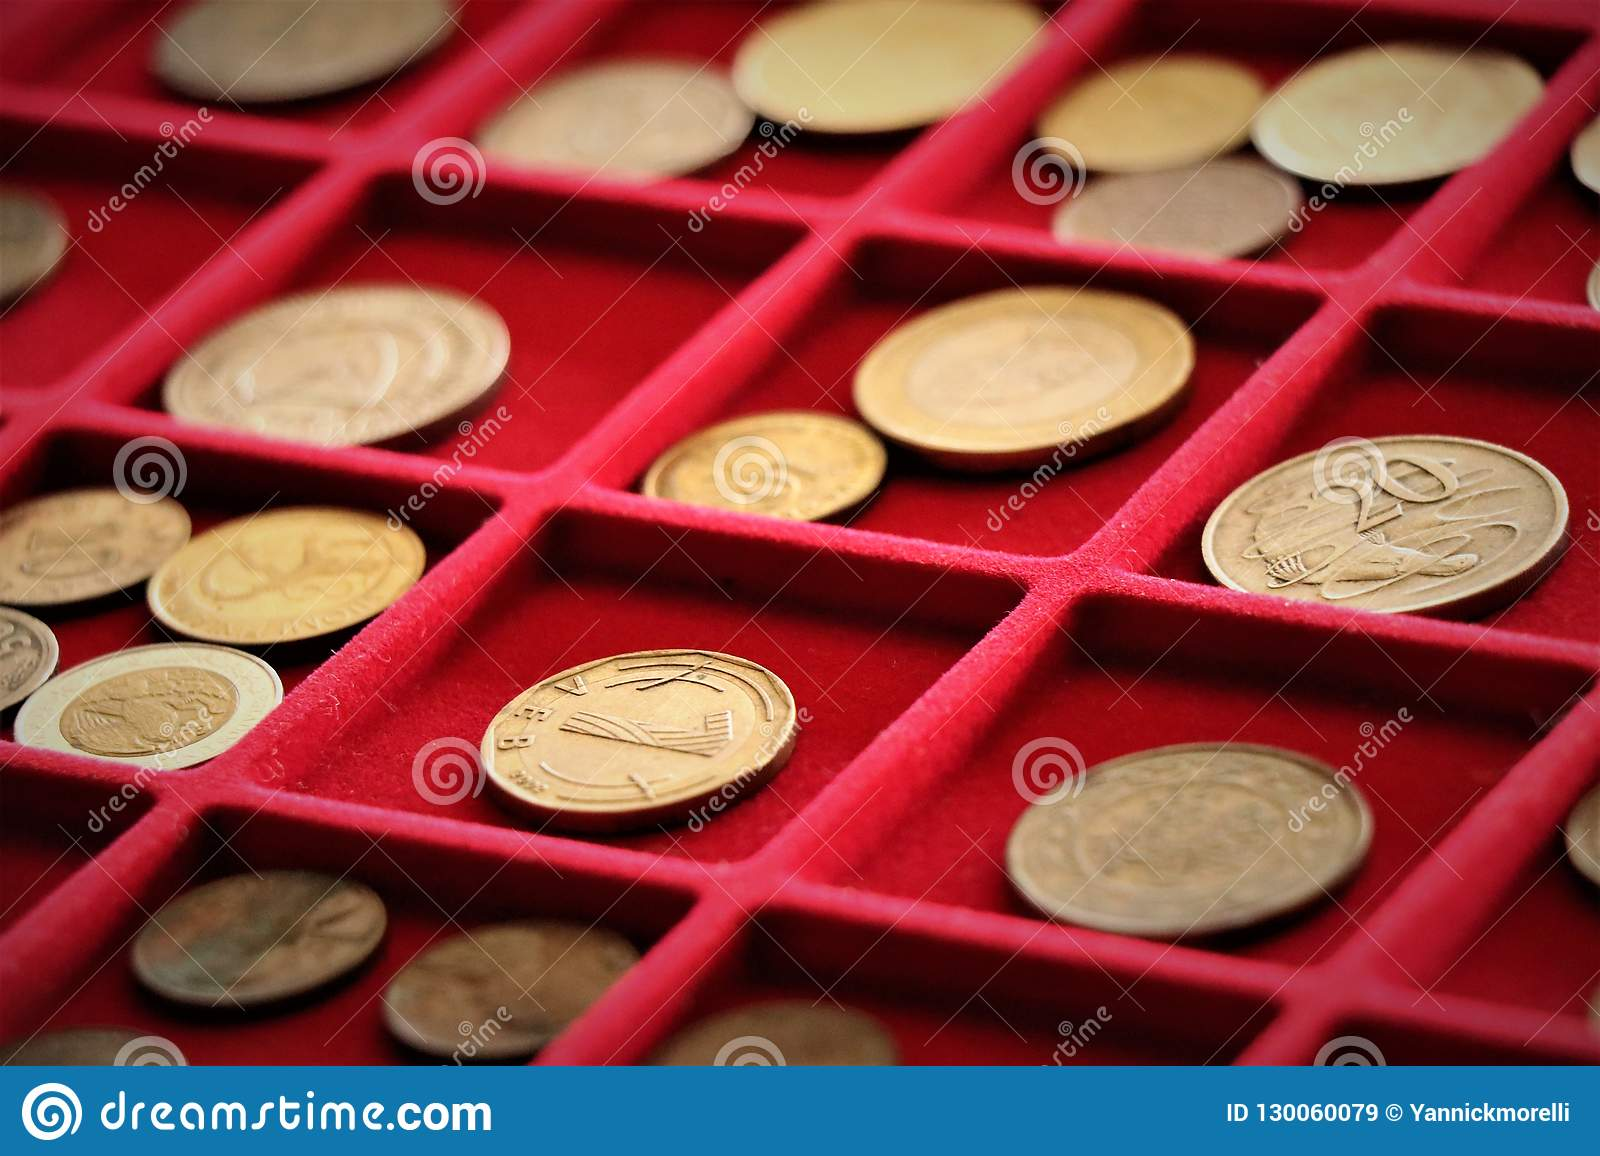 Numismatic job. Coins collection, investment.